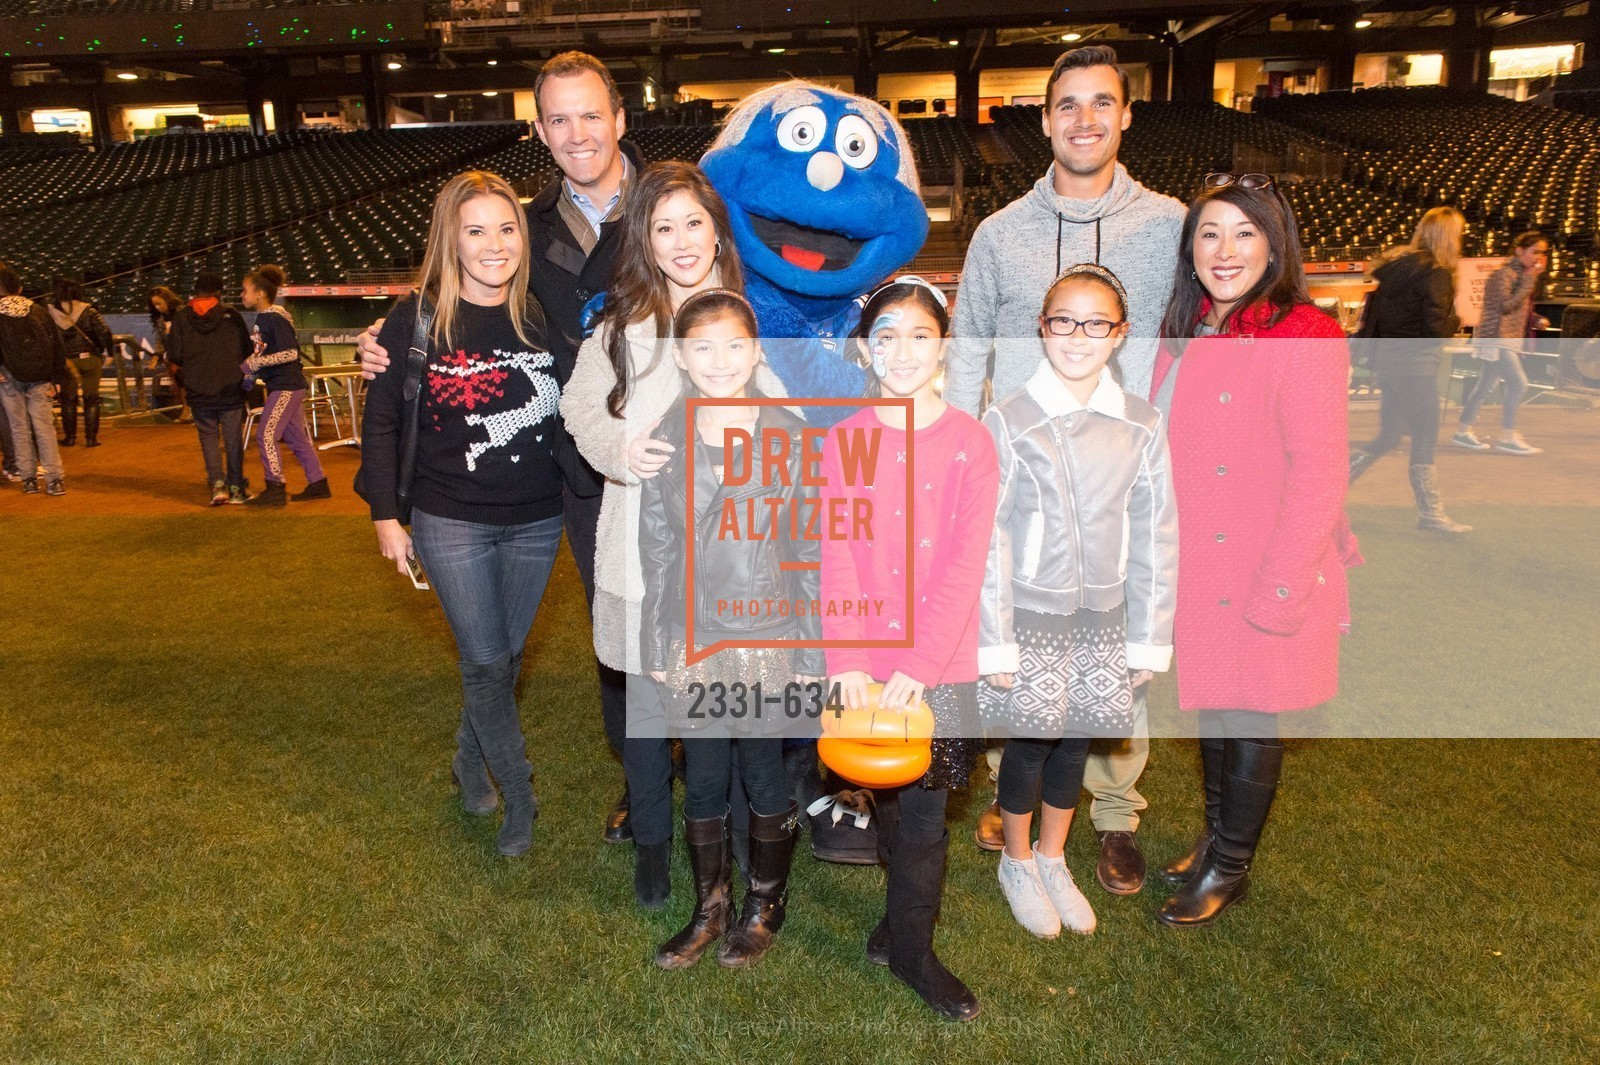 Judy Davies, John Hoch, Kristi Yamaguchi, Holiday Heroes 2015, AT&T Park, December 7th, 2015,Drew Altizer, Drew Altizer Photography, full-service agency, private events, San Francisco photographer, photographer california